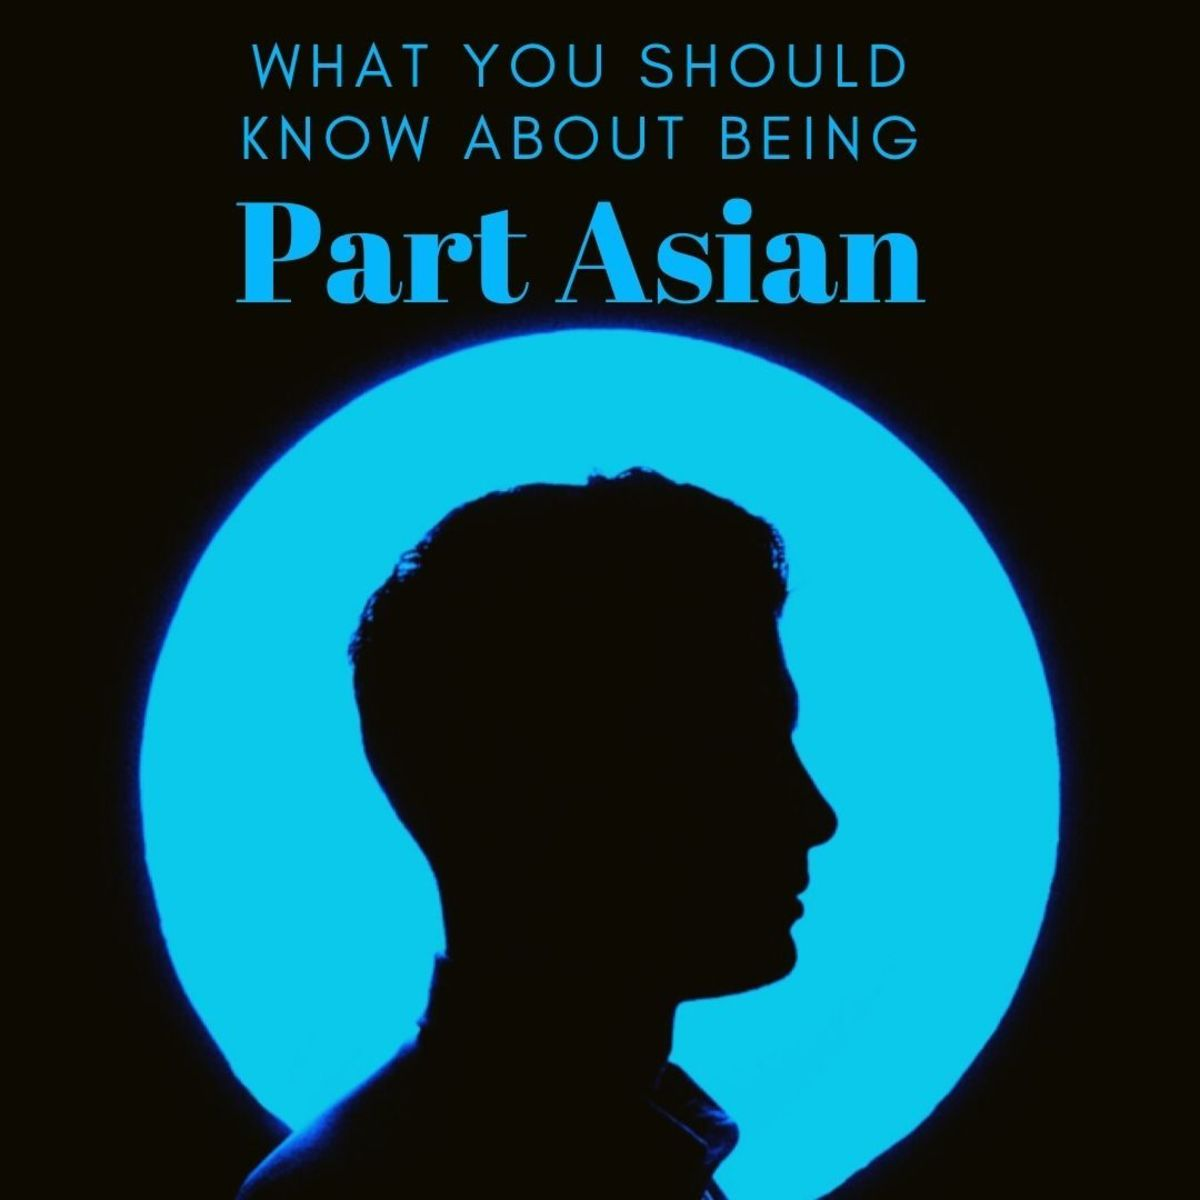 Discovering your identity can be tricky when you are part Asian.